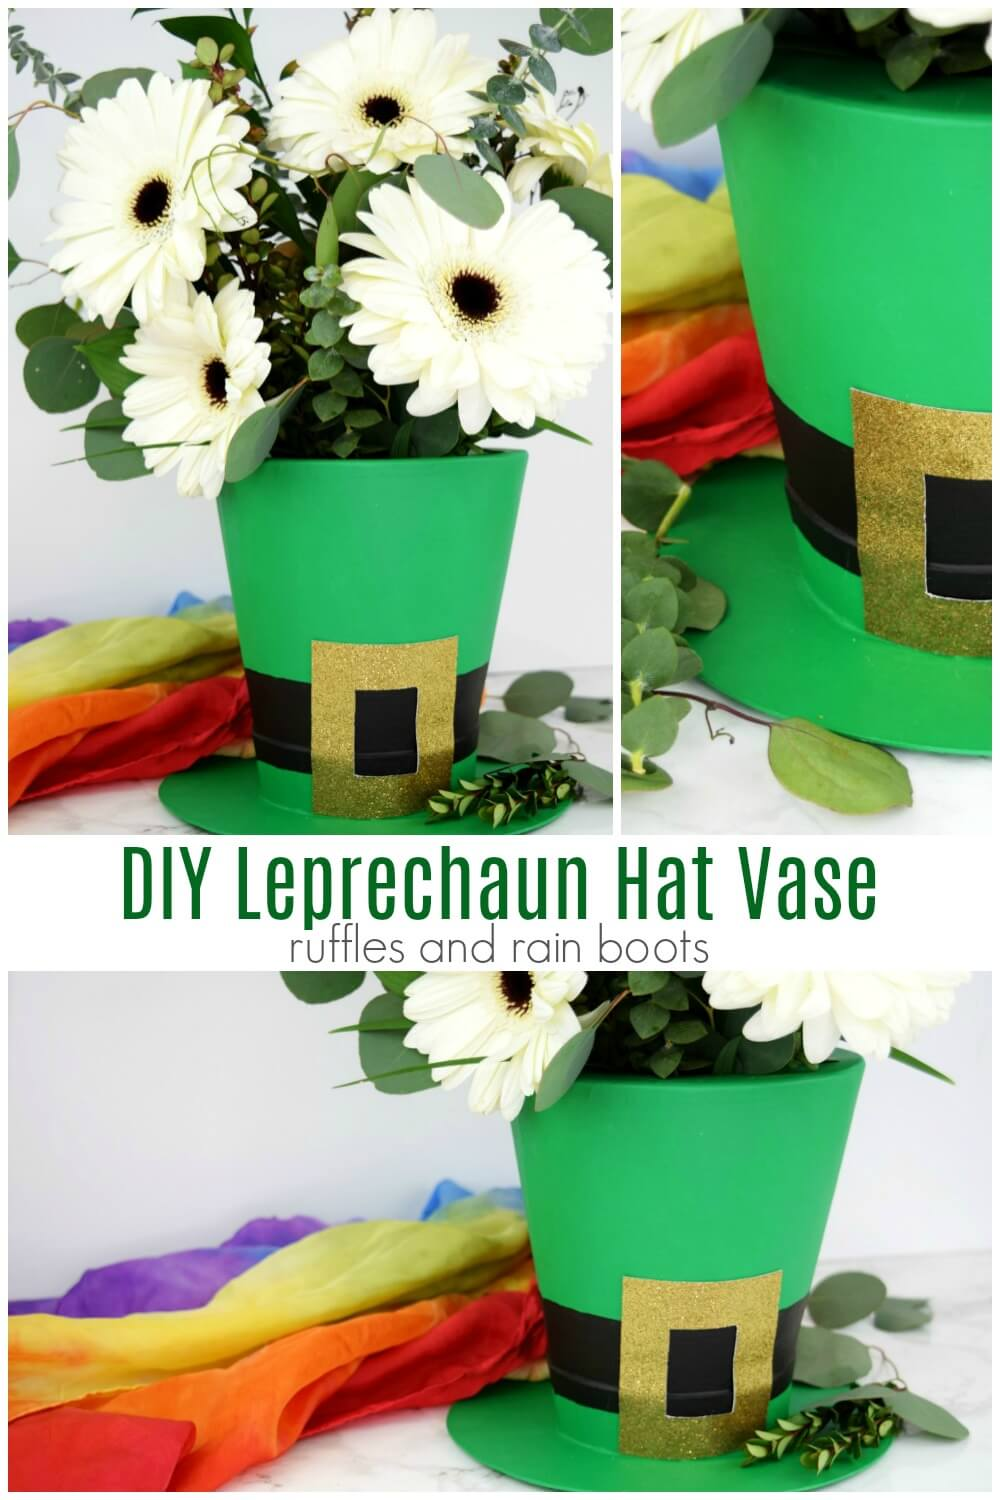 photo collage of St Patricks Day decor with text which reads DIY leprechaun hat vase